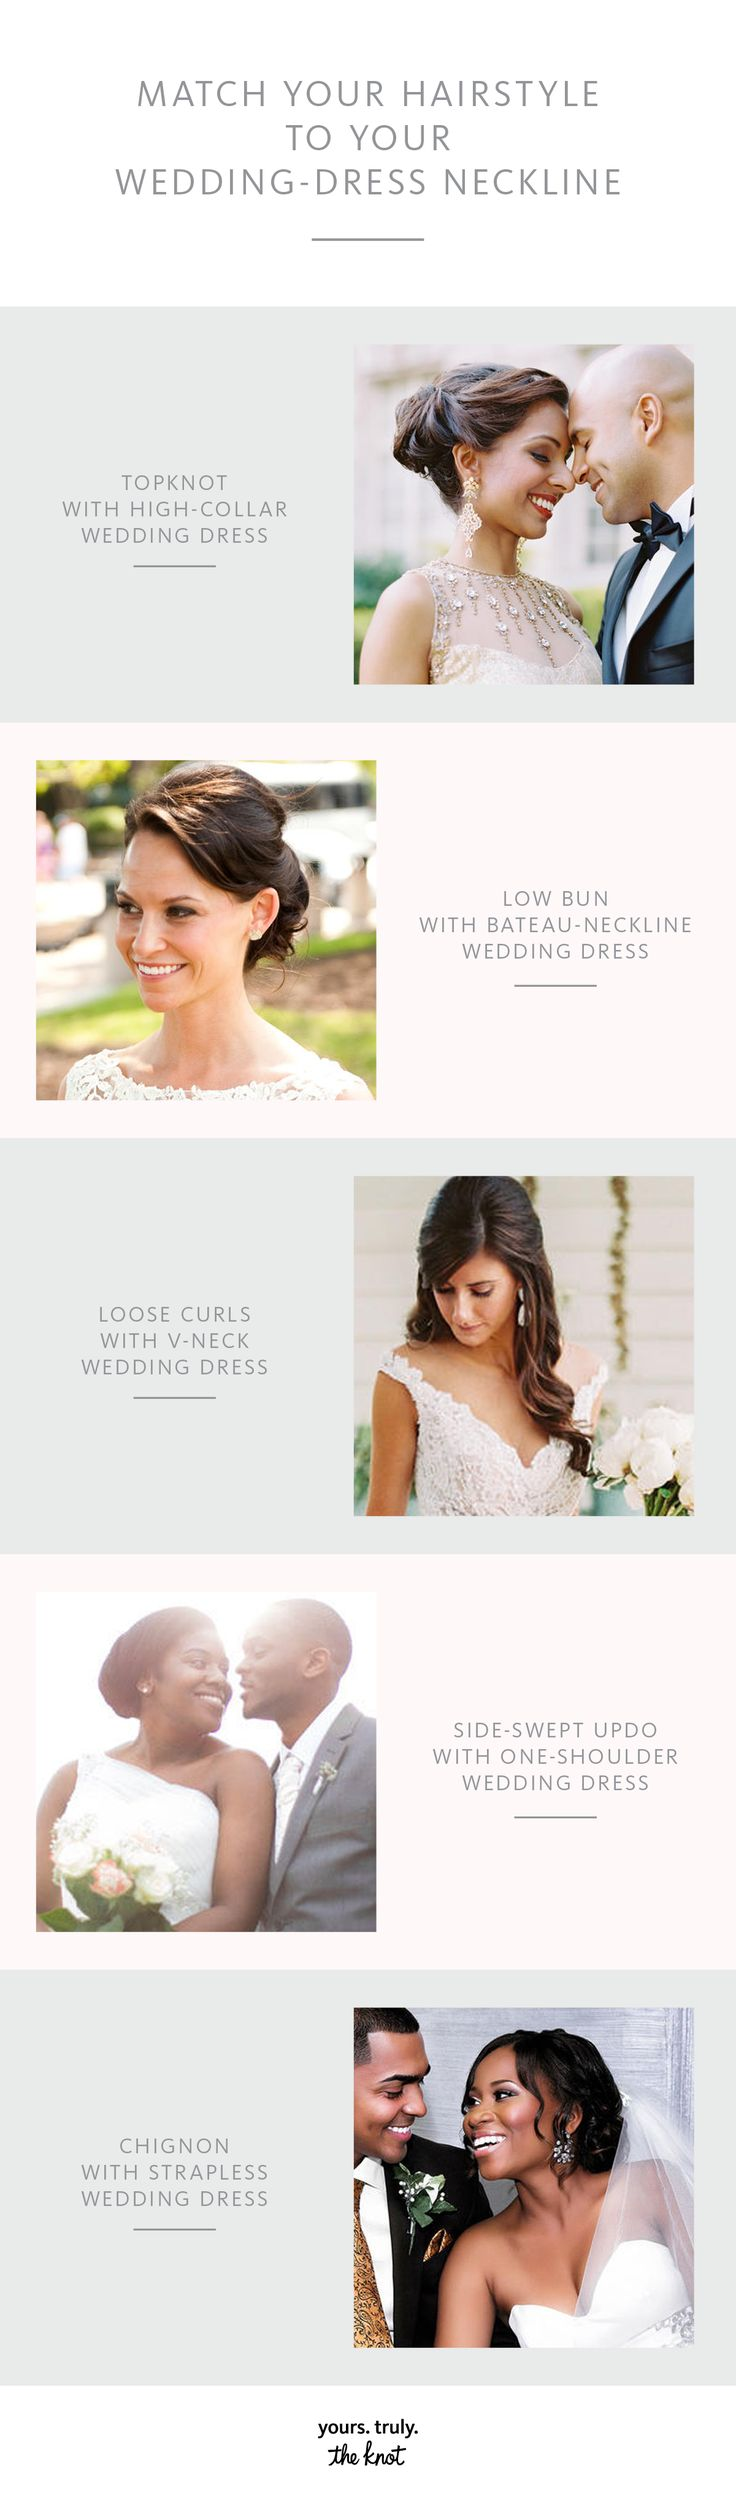 306 best Must-Read Wedding Articles images on Pinterest | Planning a ...